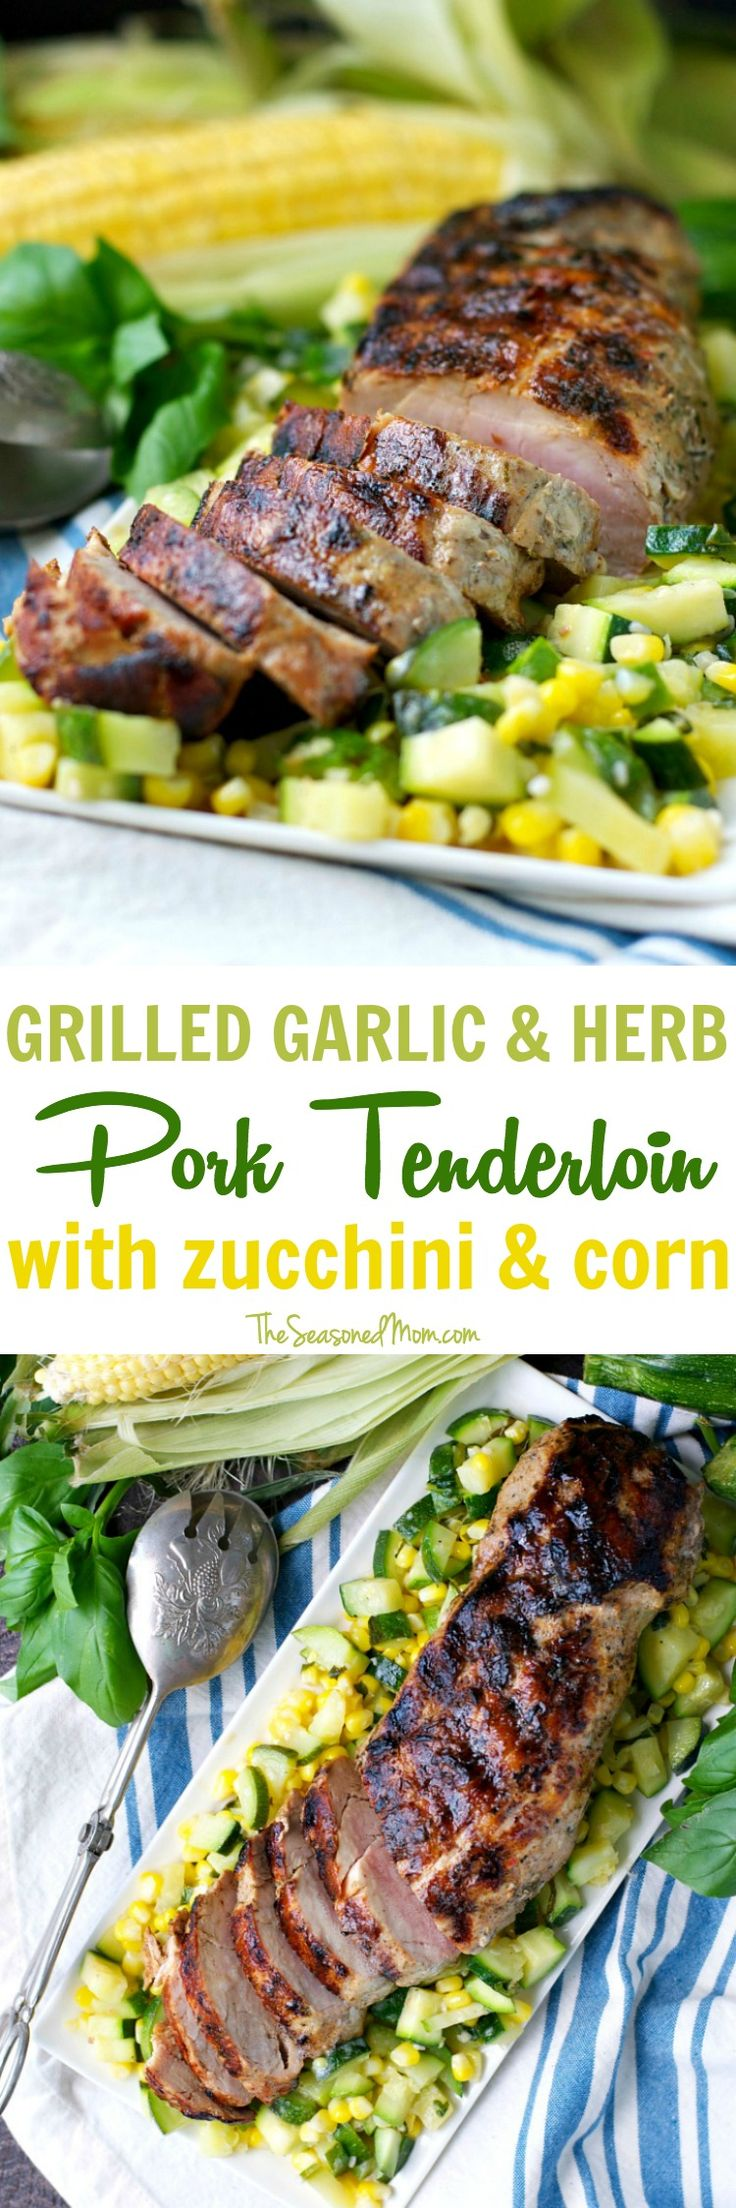 A fresh, healthy, and low calorie dinner is just 30 minutes away!  This easy Grilled Garlic and Herb Pork Tenderloin with Zucchini and Corn is a fast weeknight meal that the whole family will love. #RealFlavorRealFast #ad